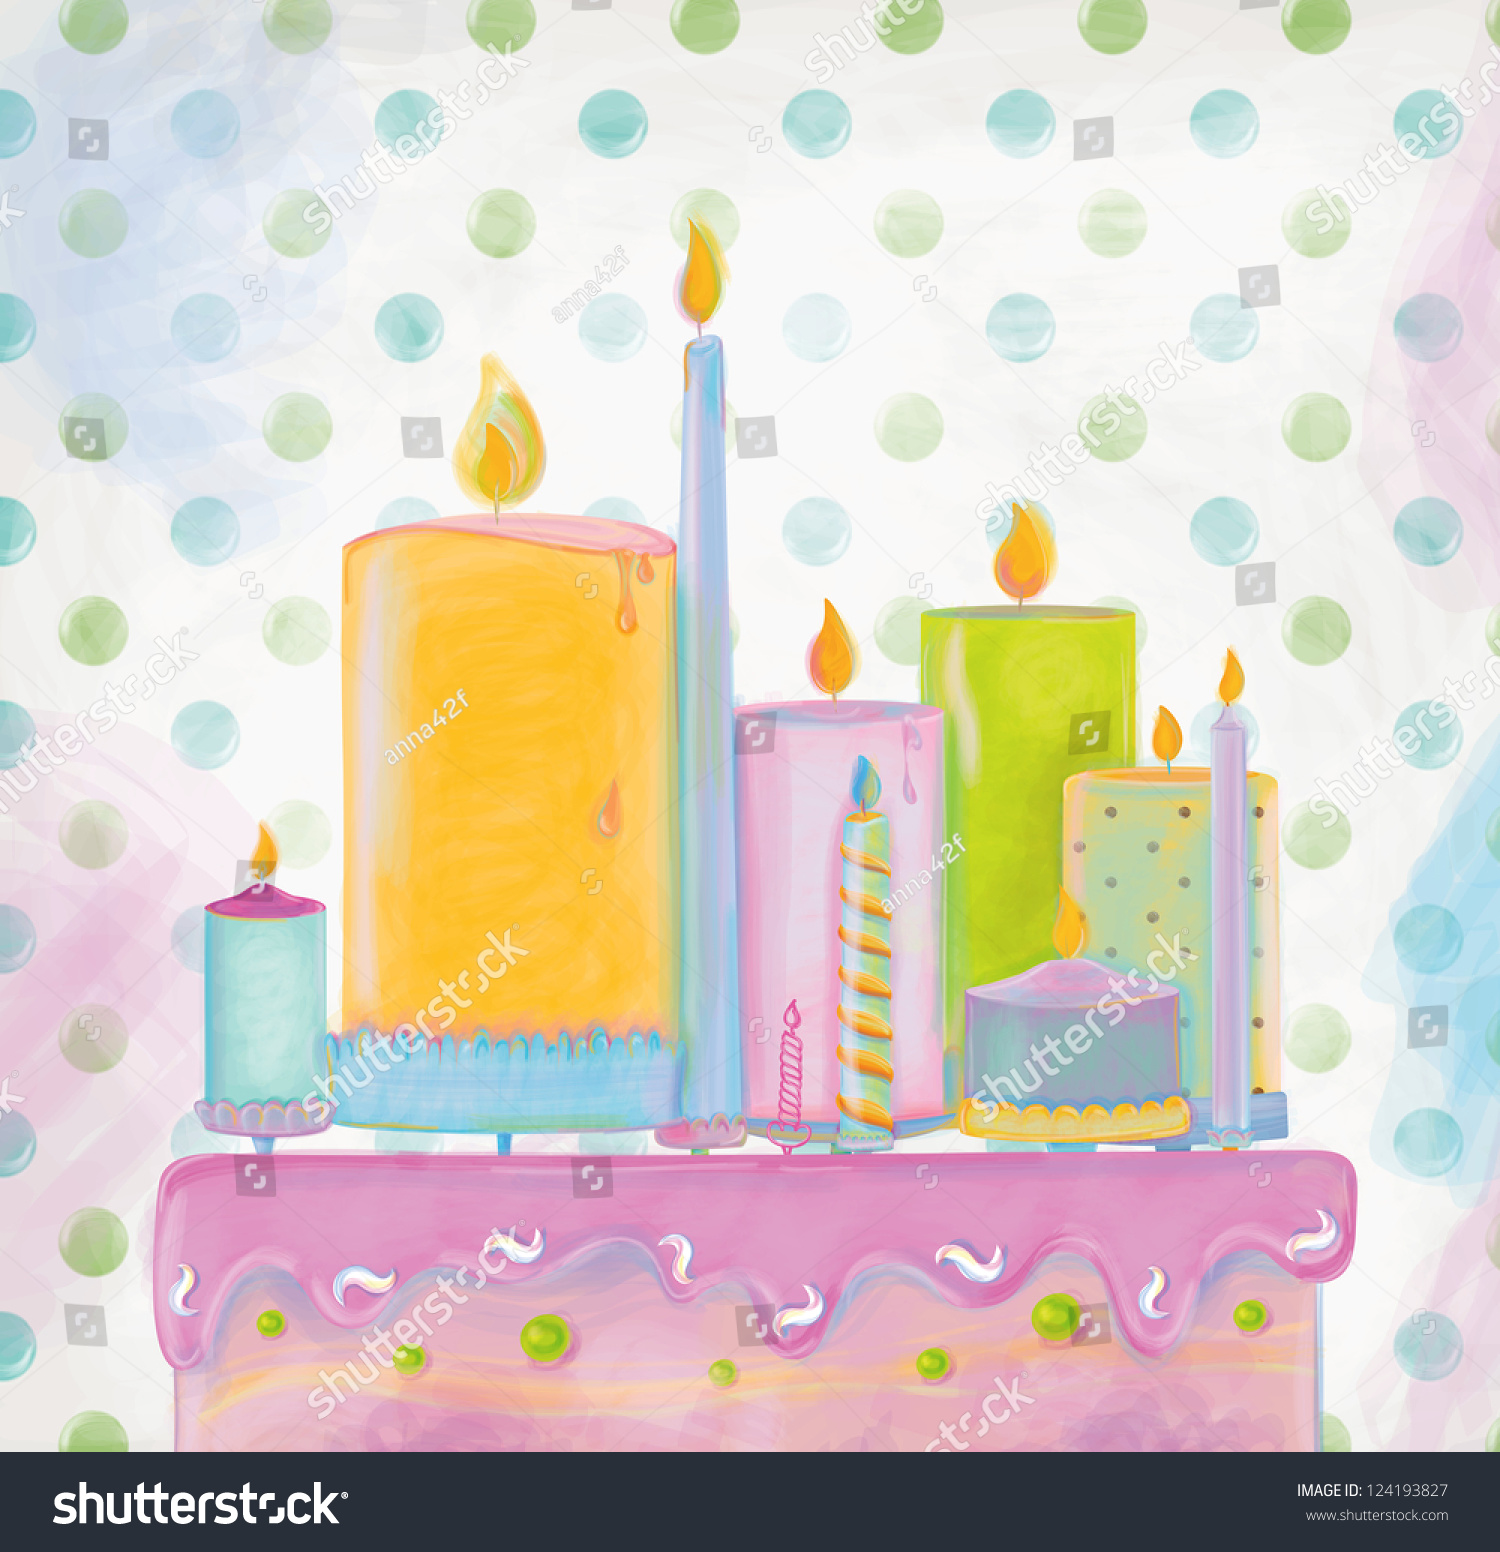 Birthday Cake With Many Types Of Candles On It